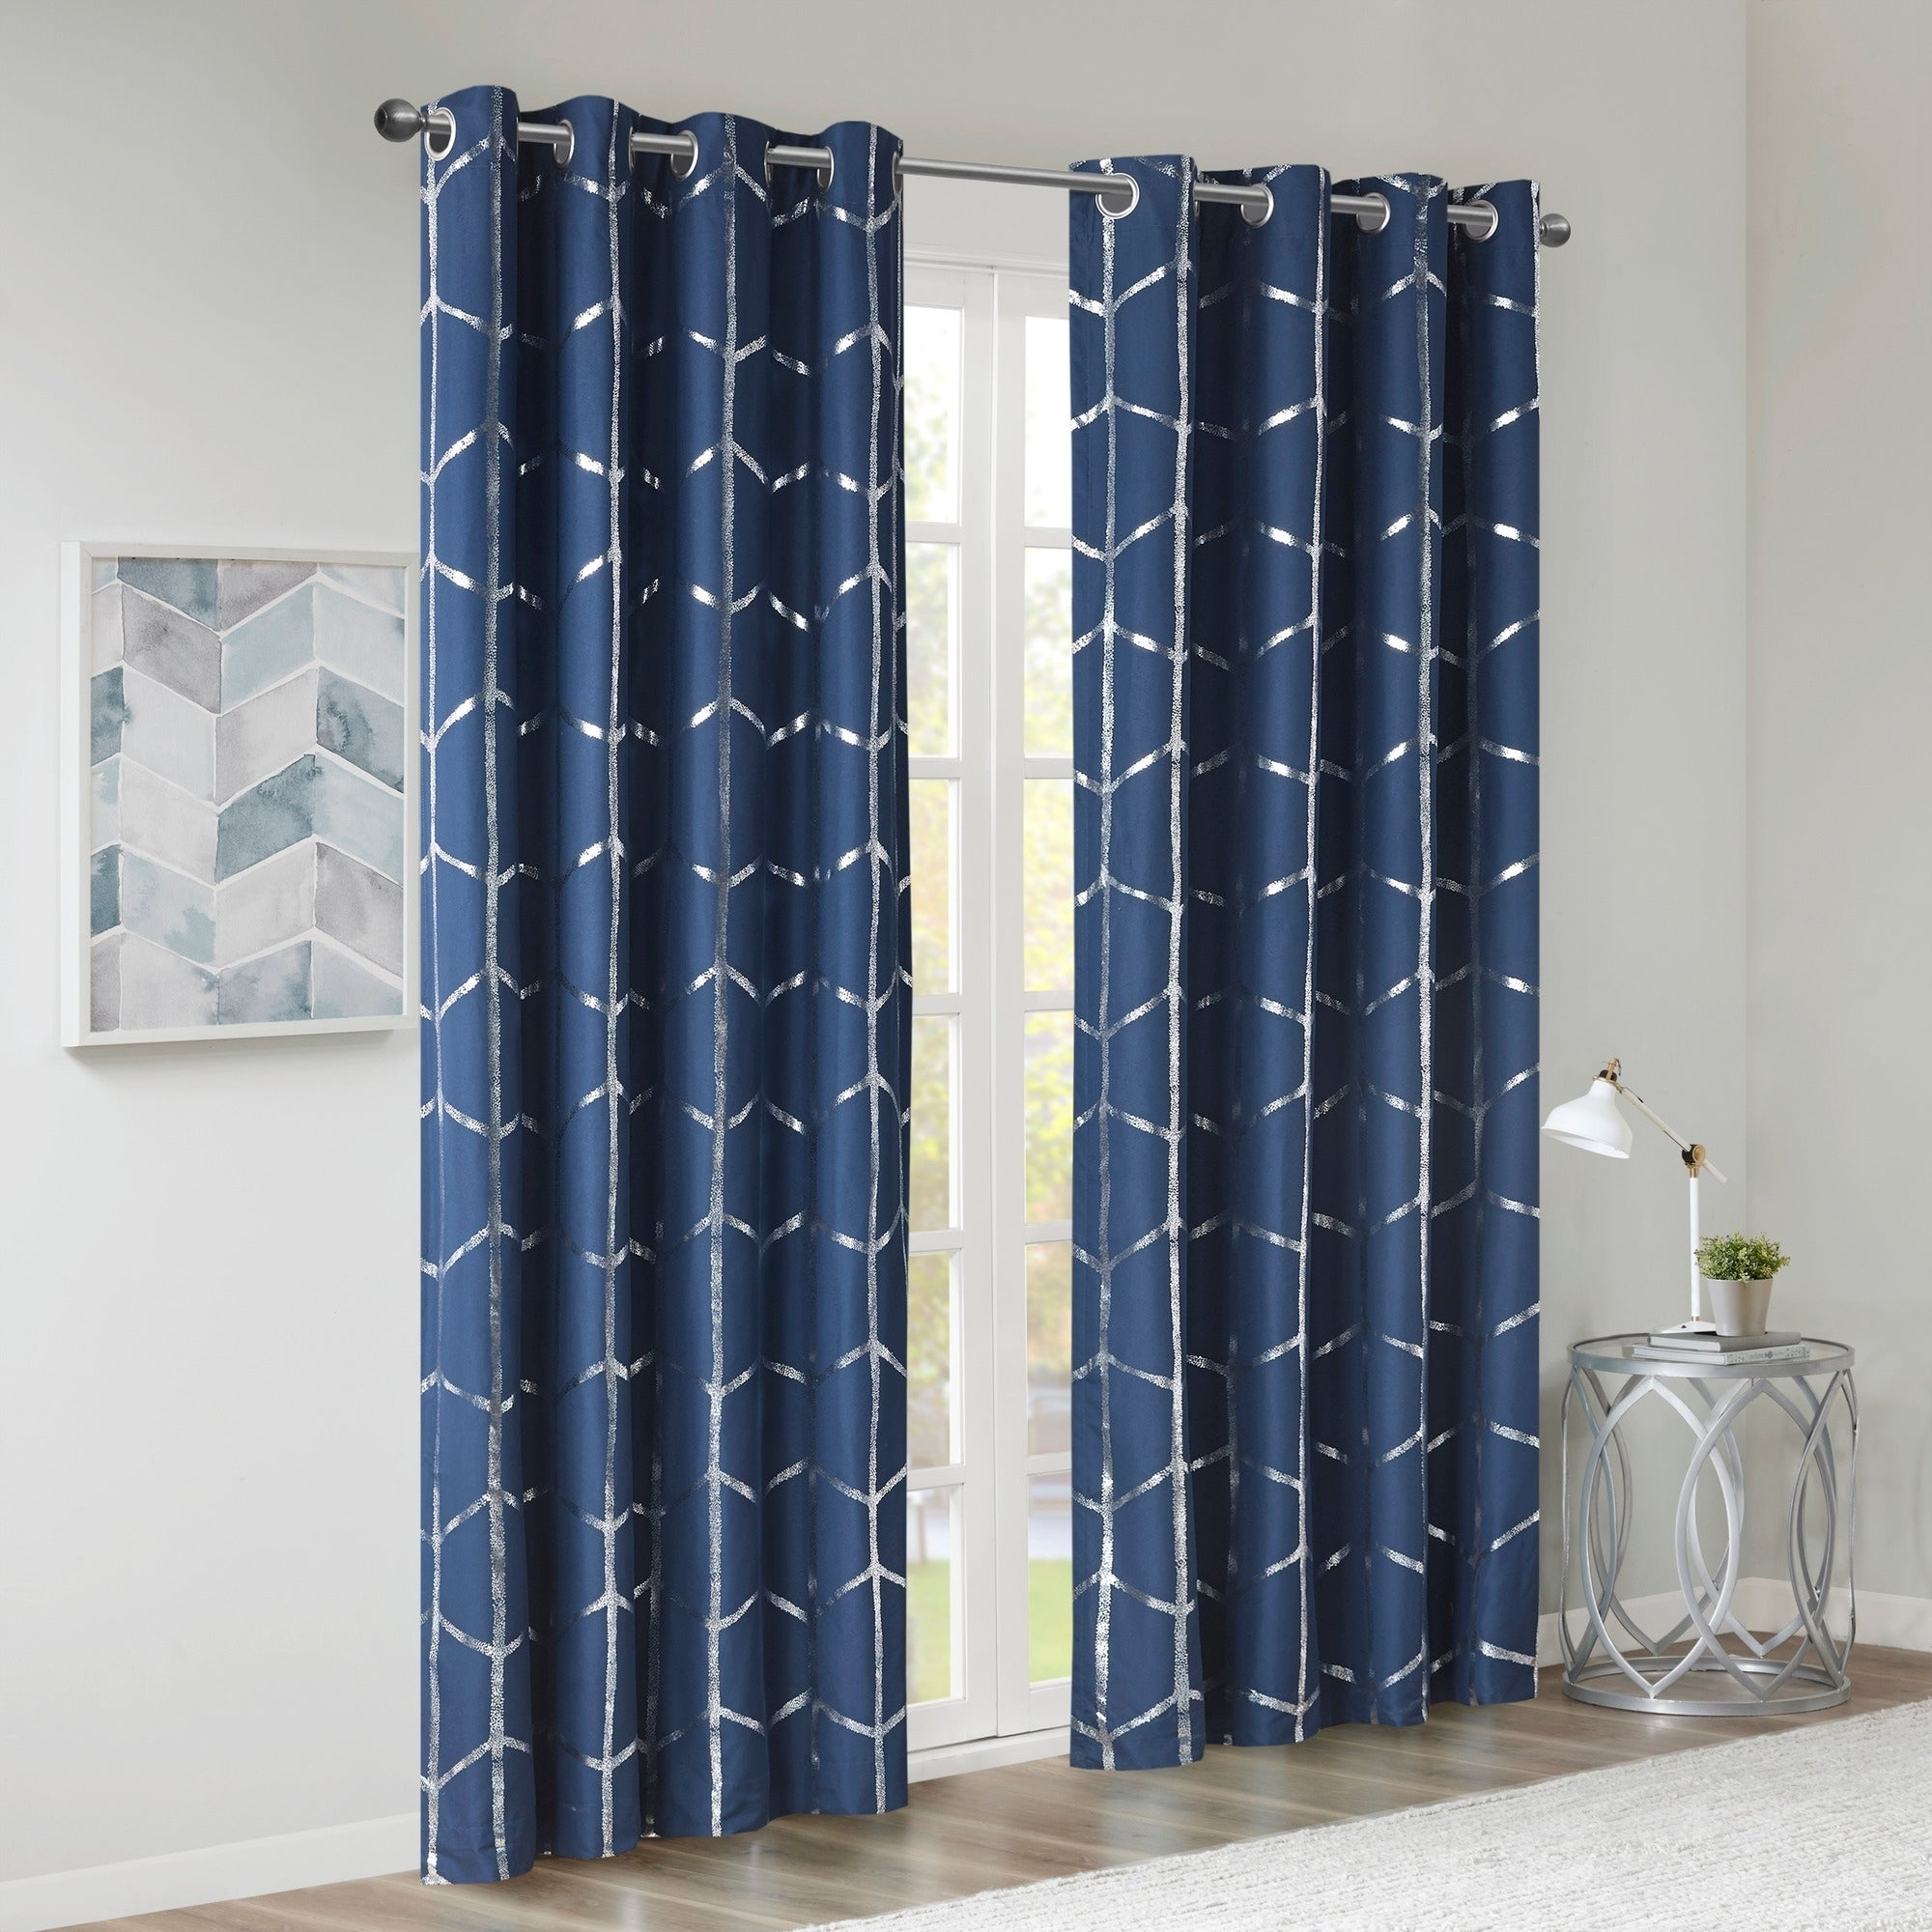 Intelligent Design Khloe Total Blackout Metallic Print Grommet Top Curtain Panel Pertaining To Total Blackout Metallic Print Grommet Top Curtain Panels (View 5 of 36)